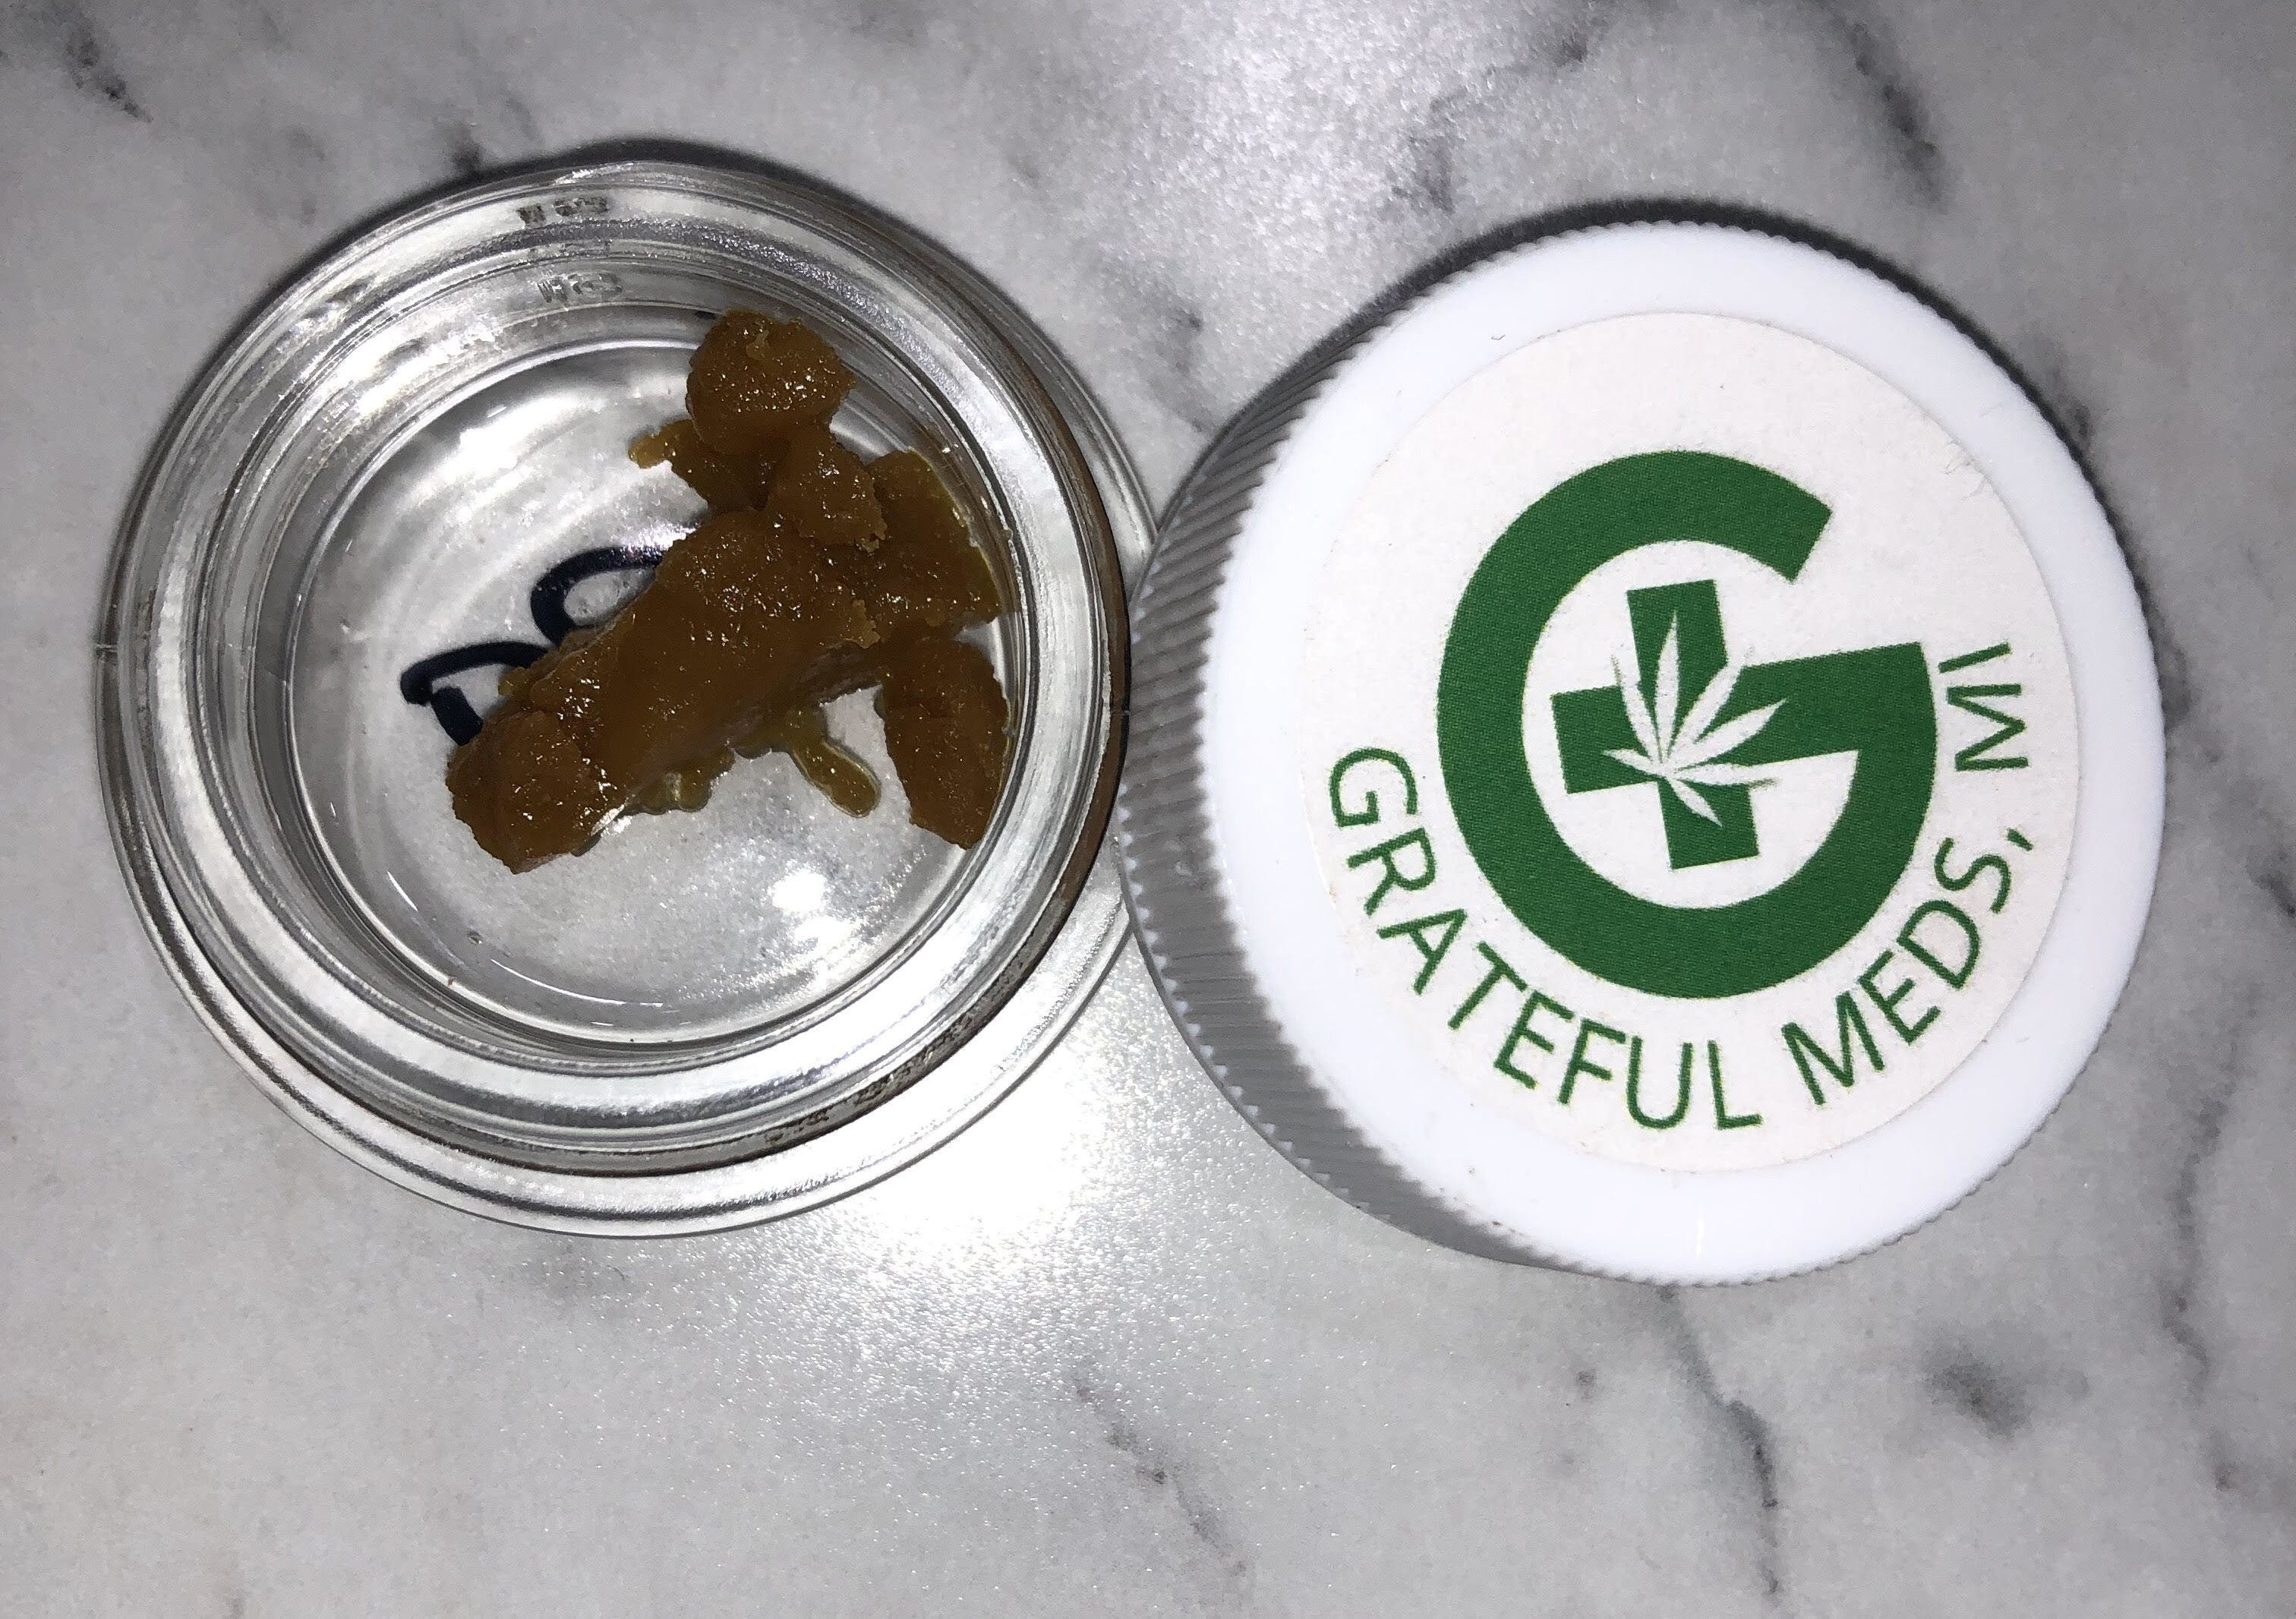 concentrate-grateful-meds-badder